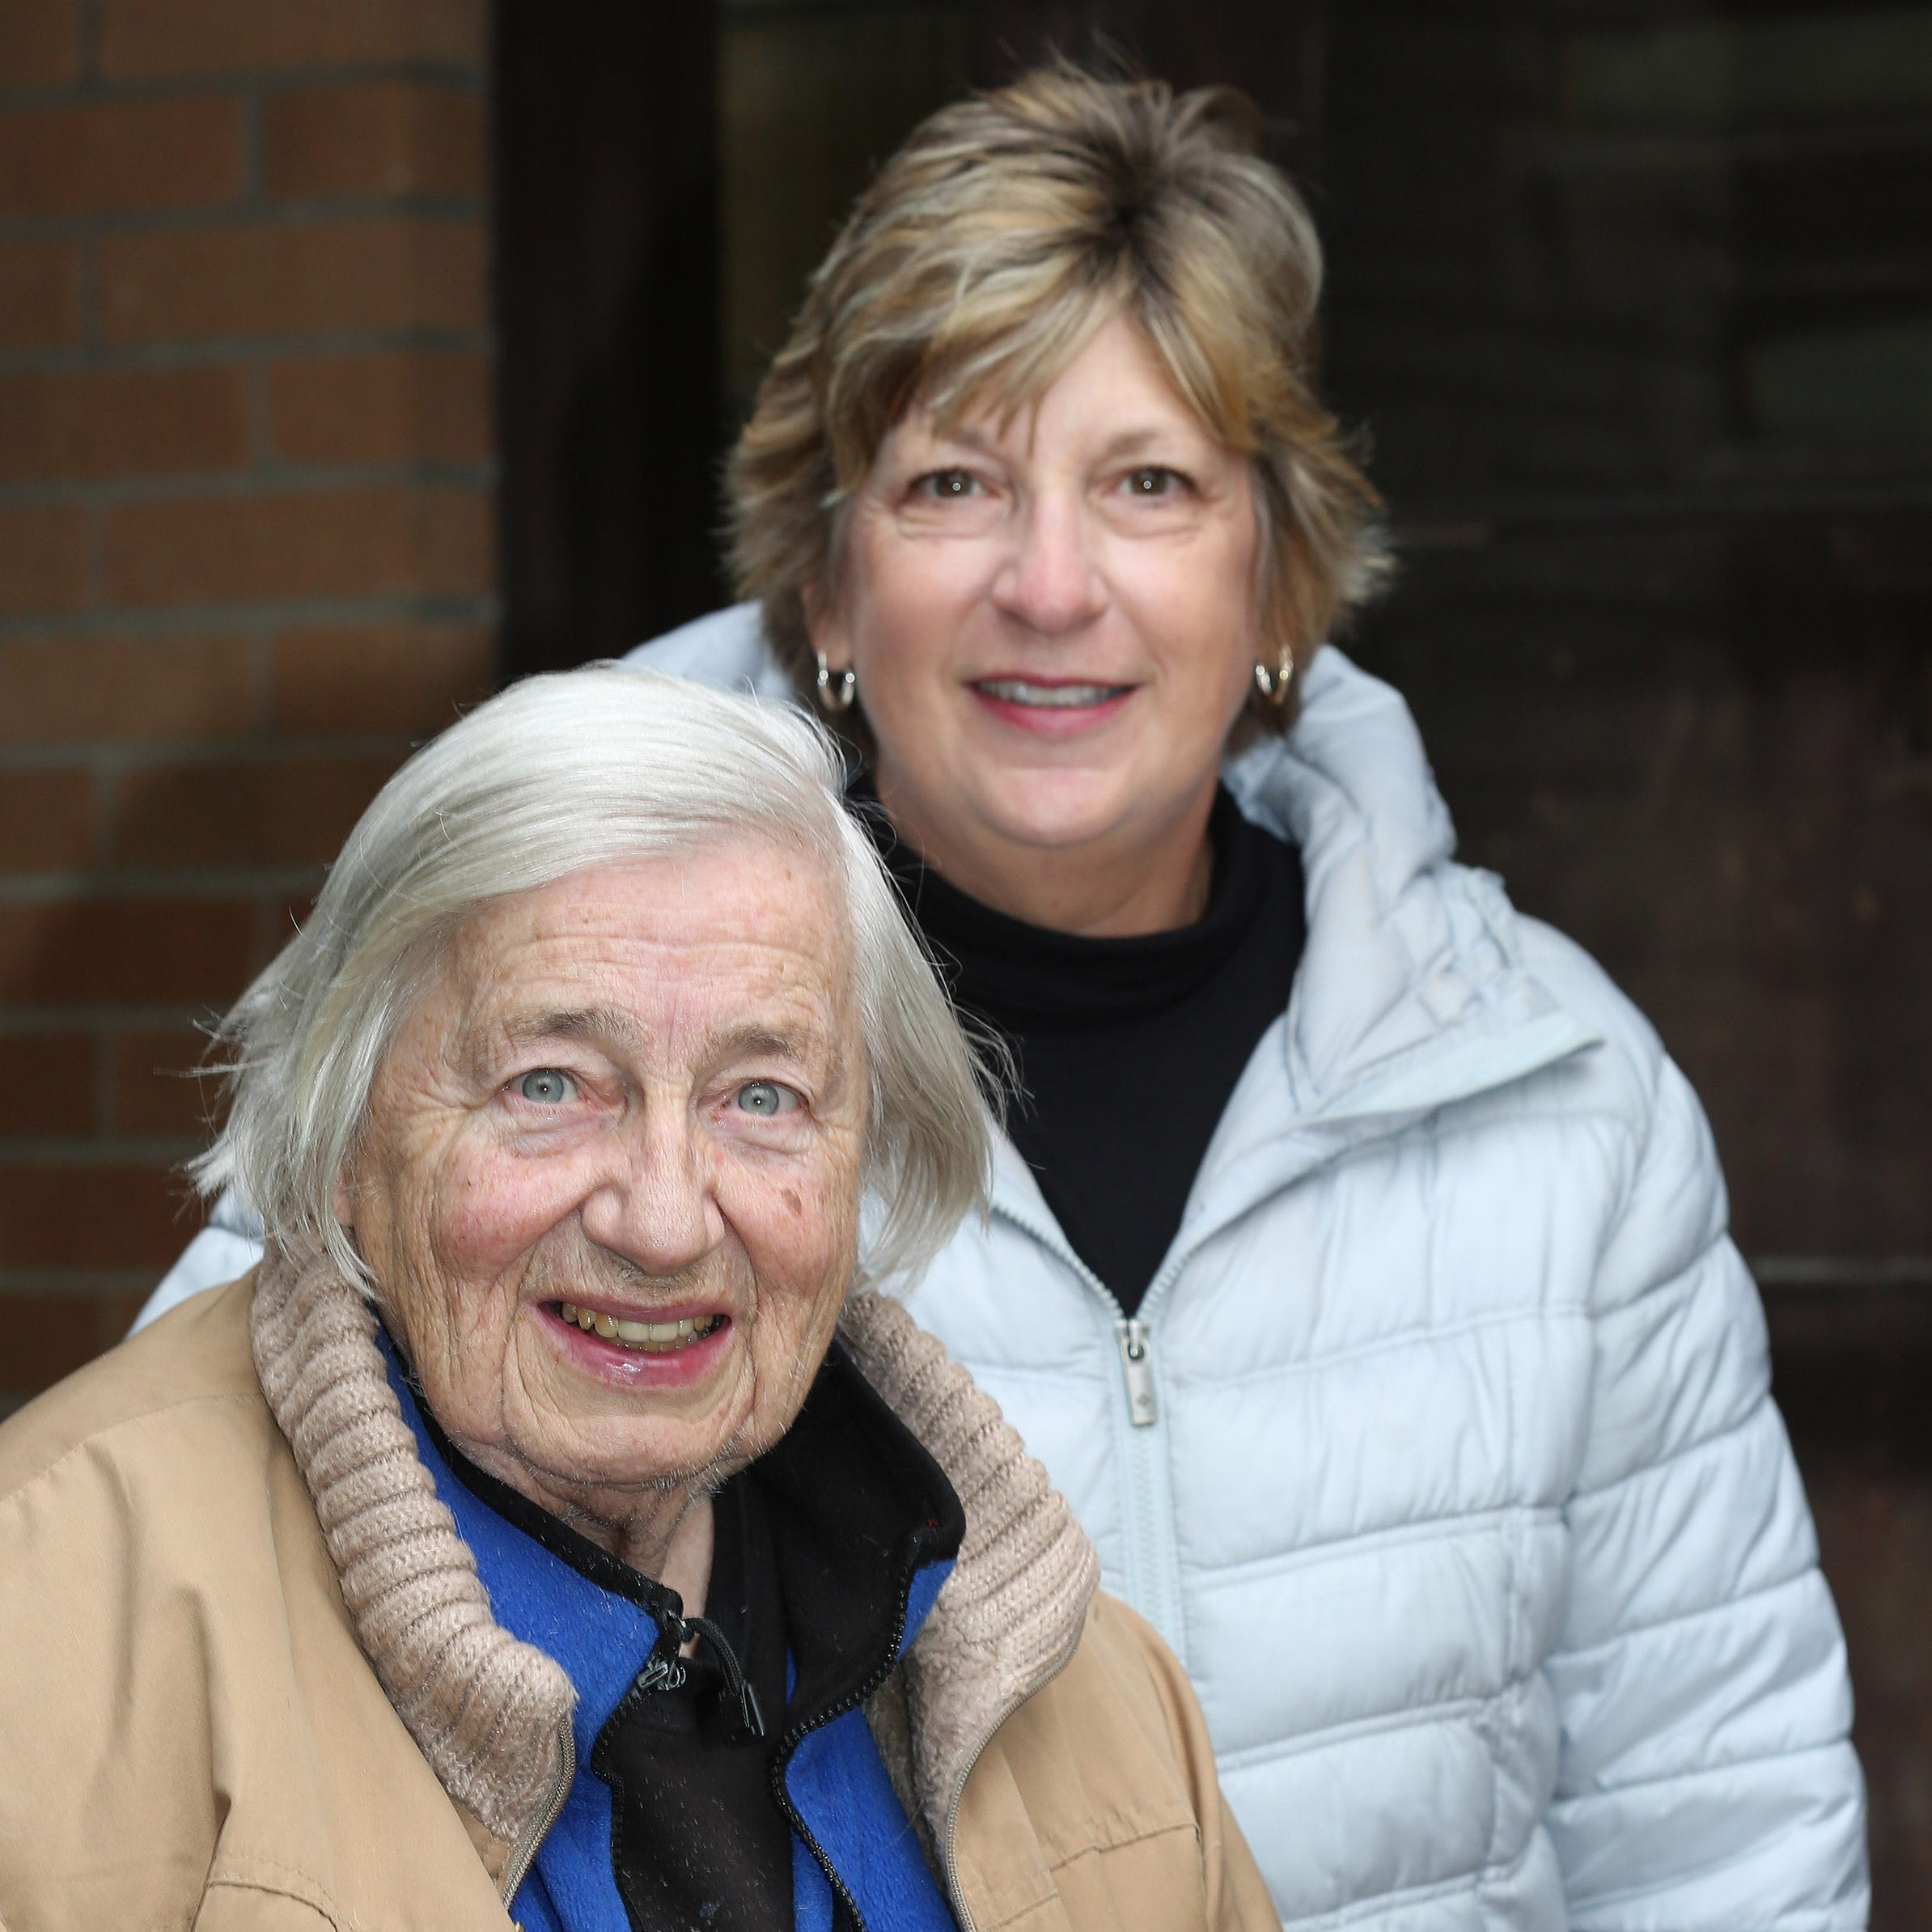 Sheboygan woman, 85, spent 8 days on the floor after a fall. Her friend saved her.